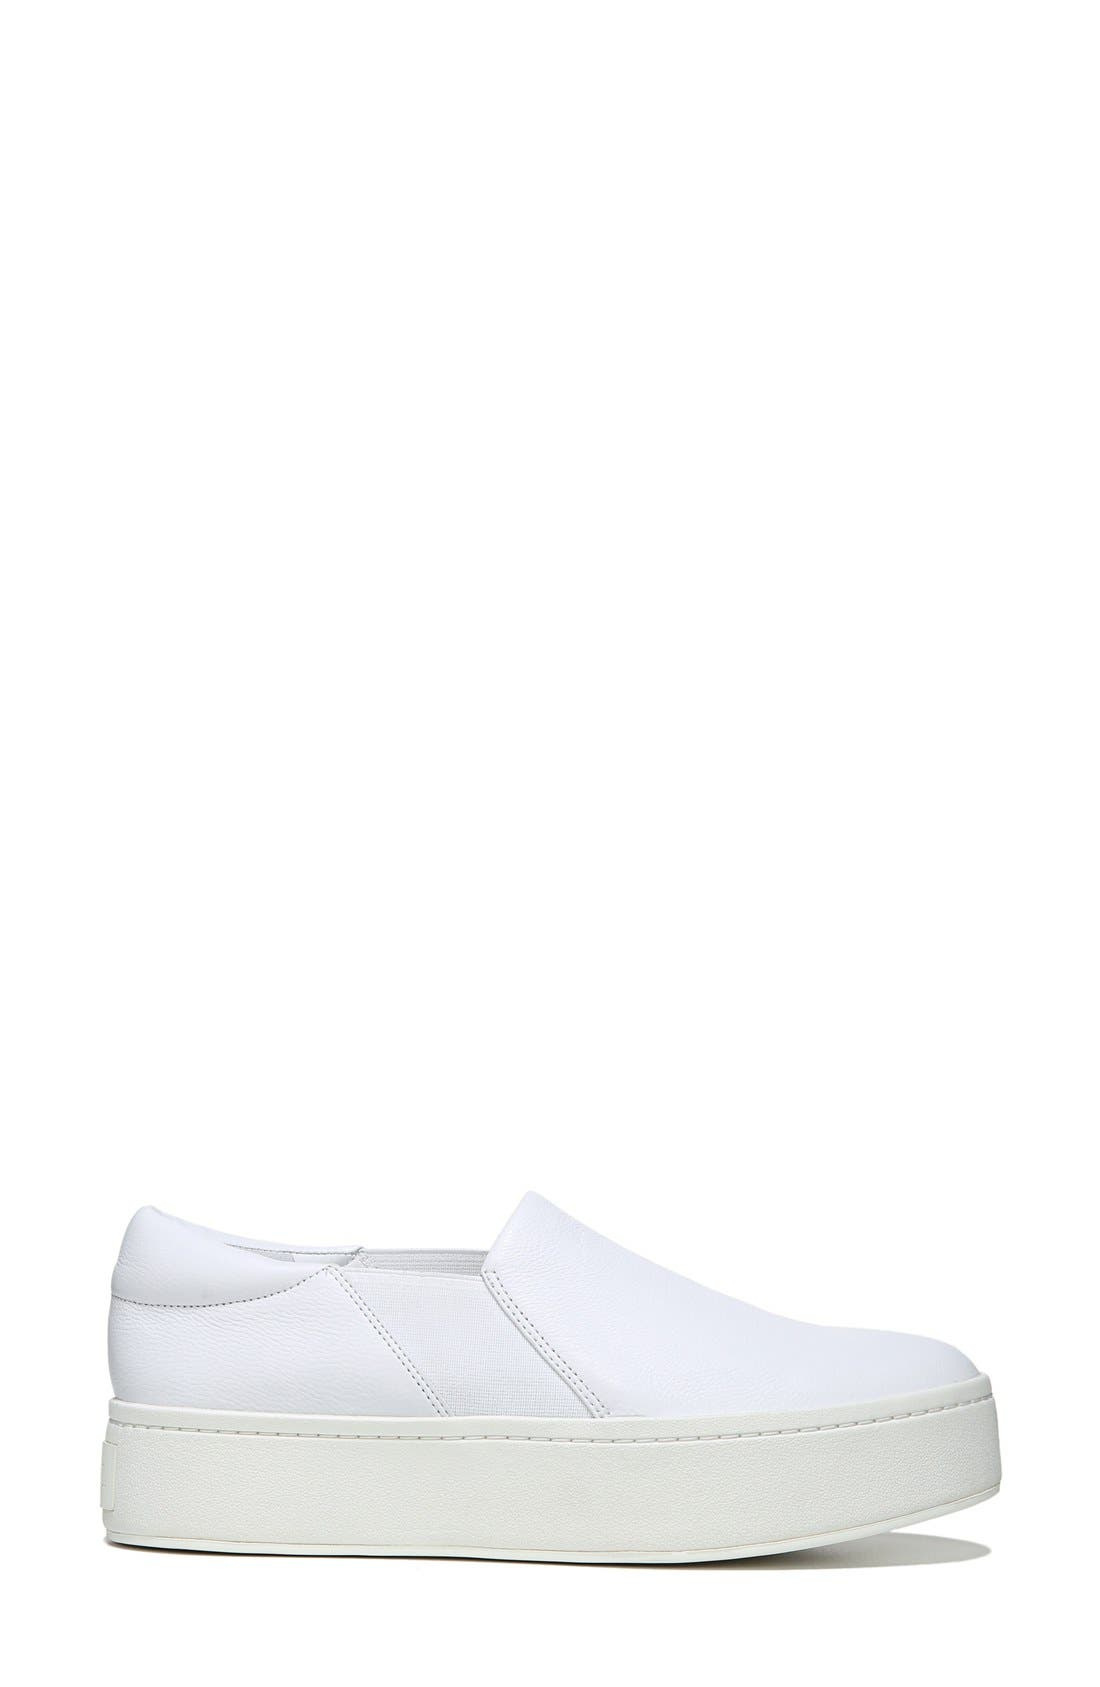 VINCE, Warren Slip-On Sneaker, Alternate thumbnail 2, color, PLASTER LEATHER